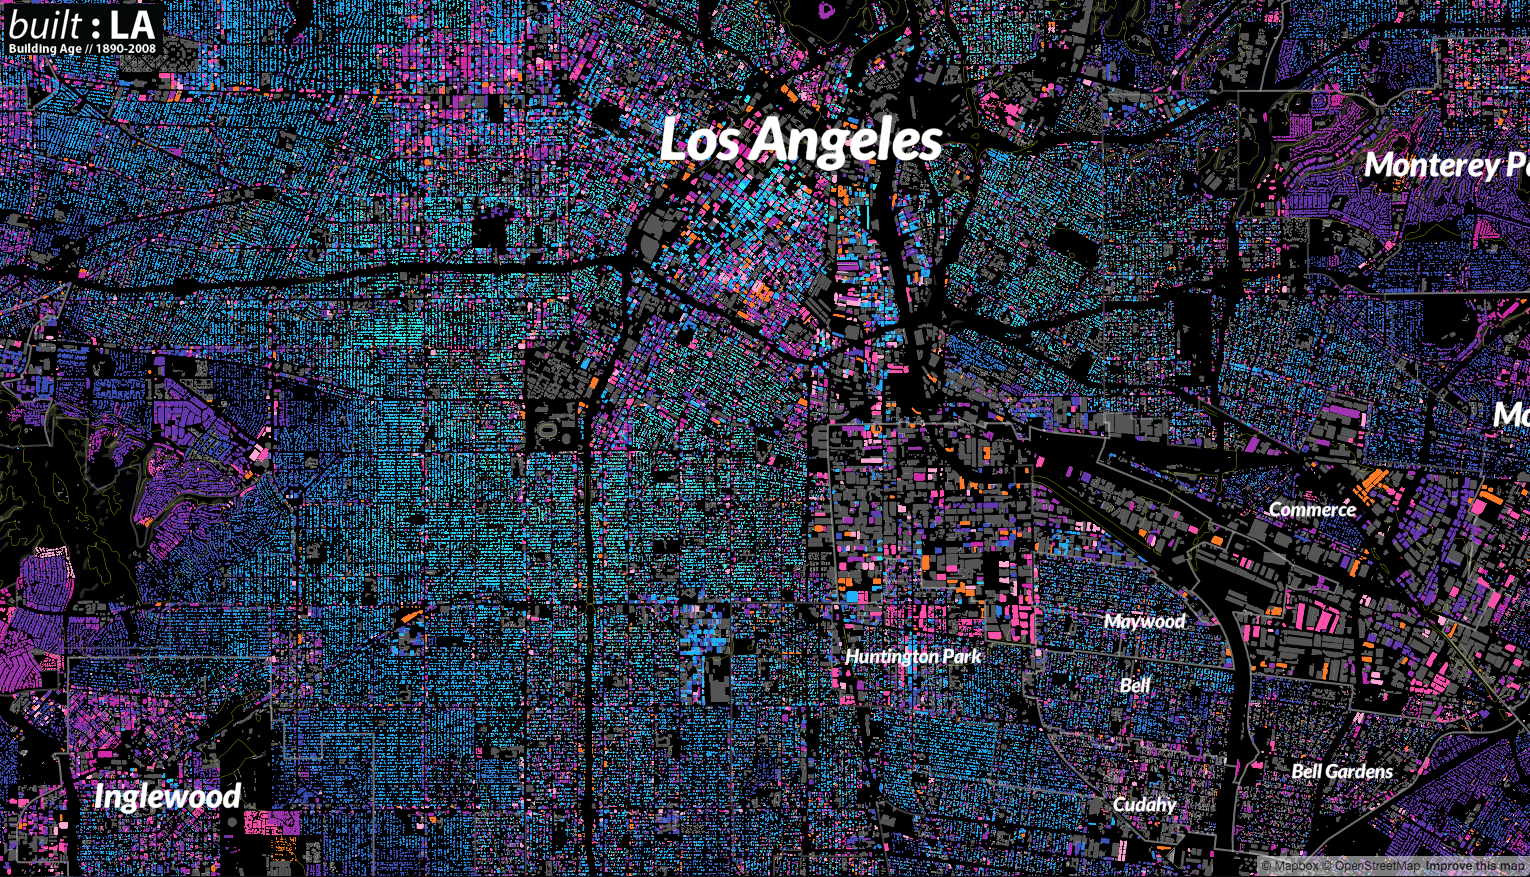 color coded building map of los angeles created using mapbox